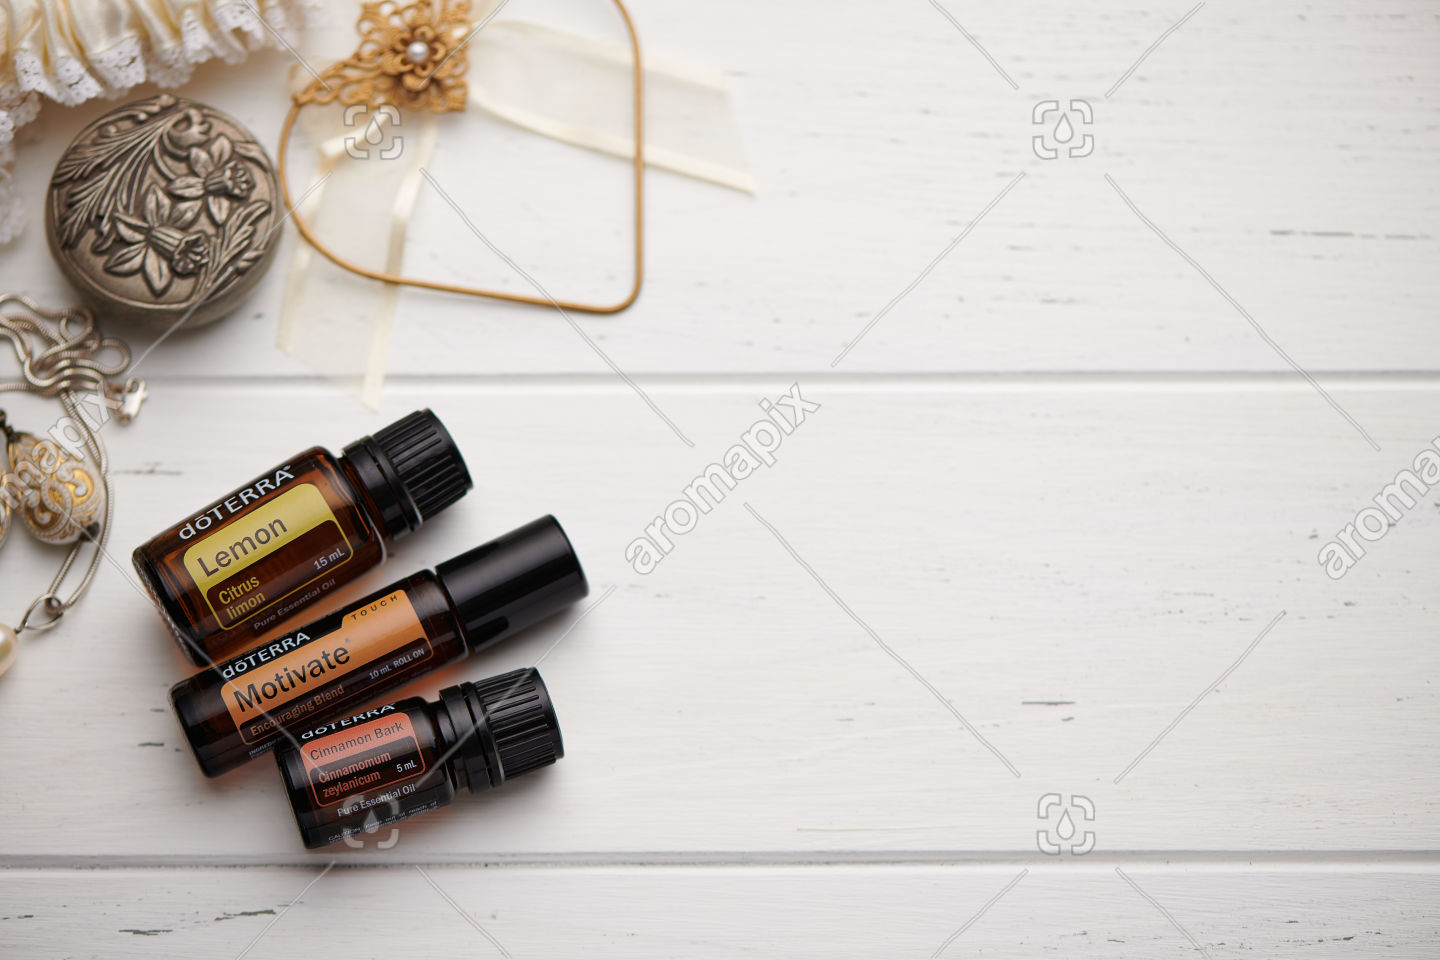 doTERRA Lemon, Motivate Touch and Cinnamon on white background